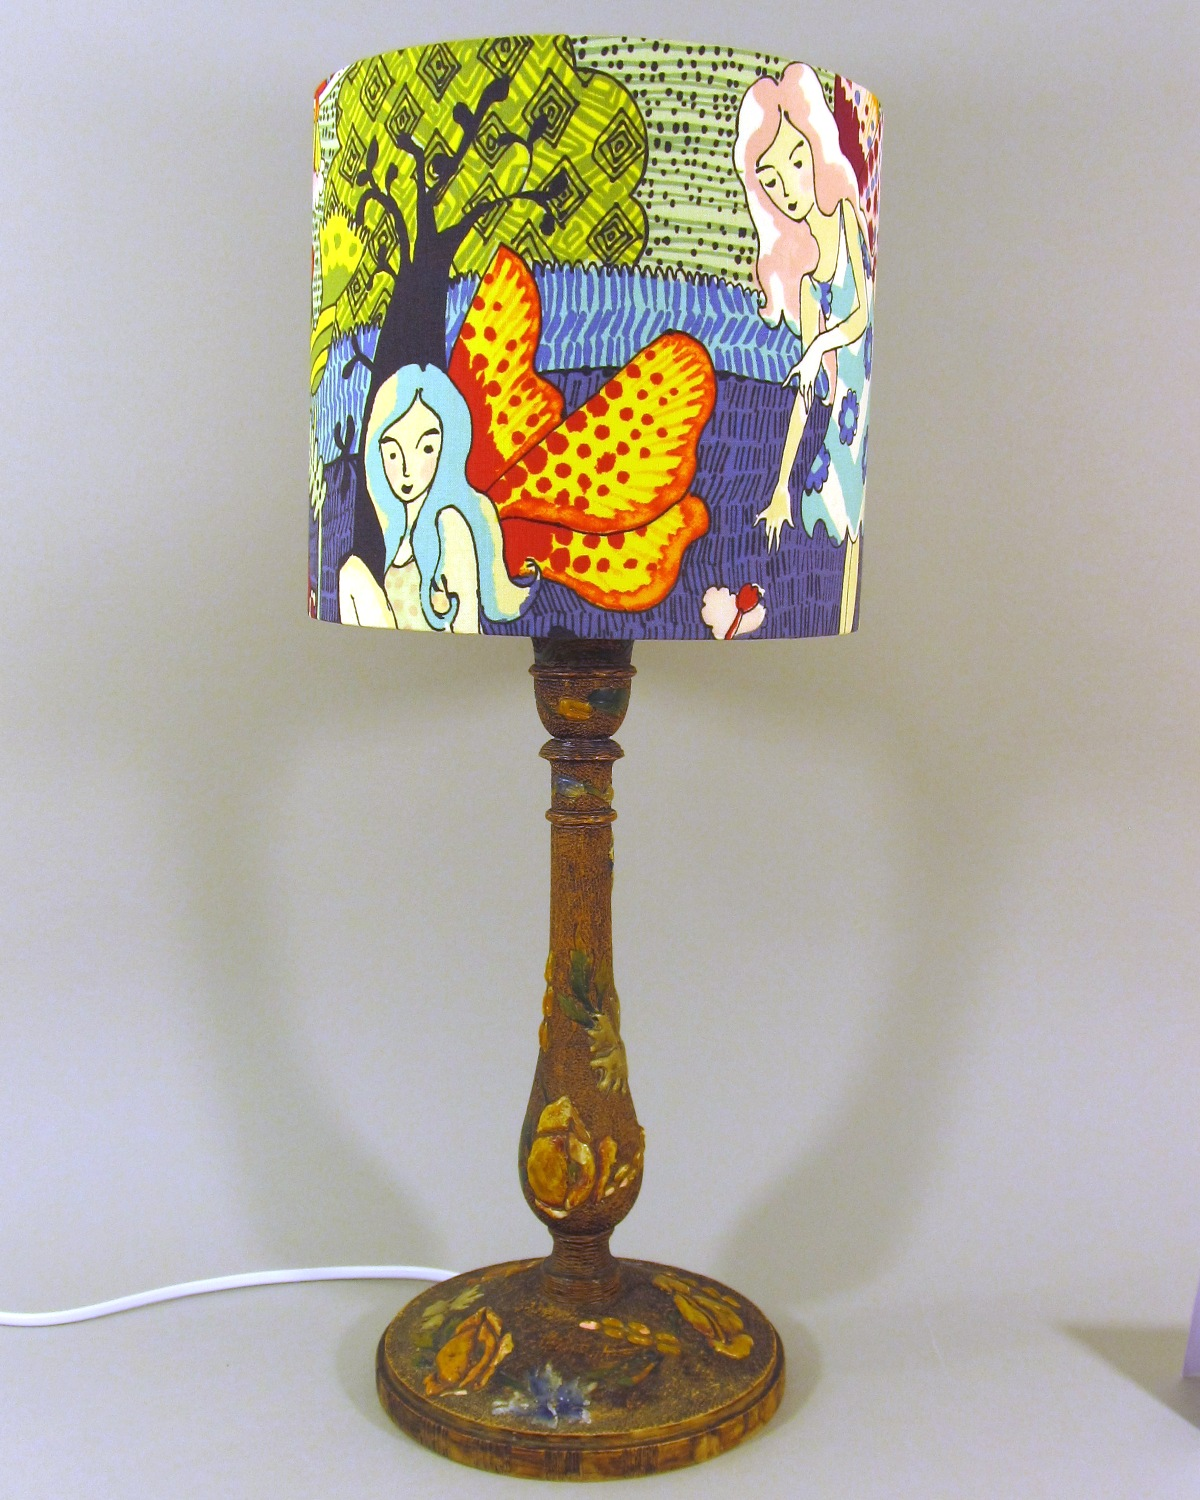 Fairytale vintage lamp with handmade shade